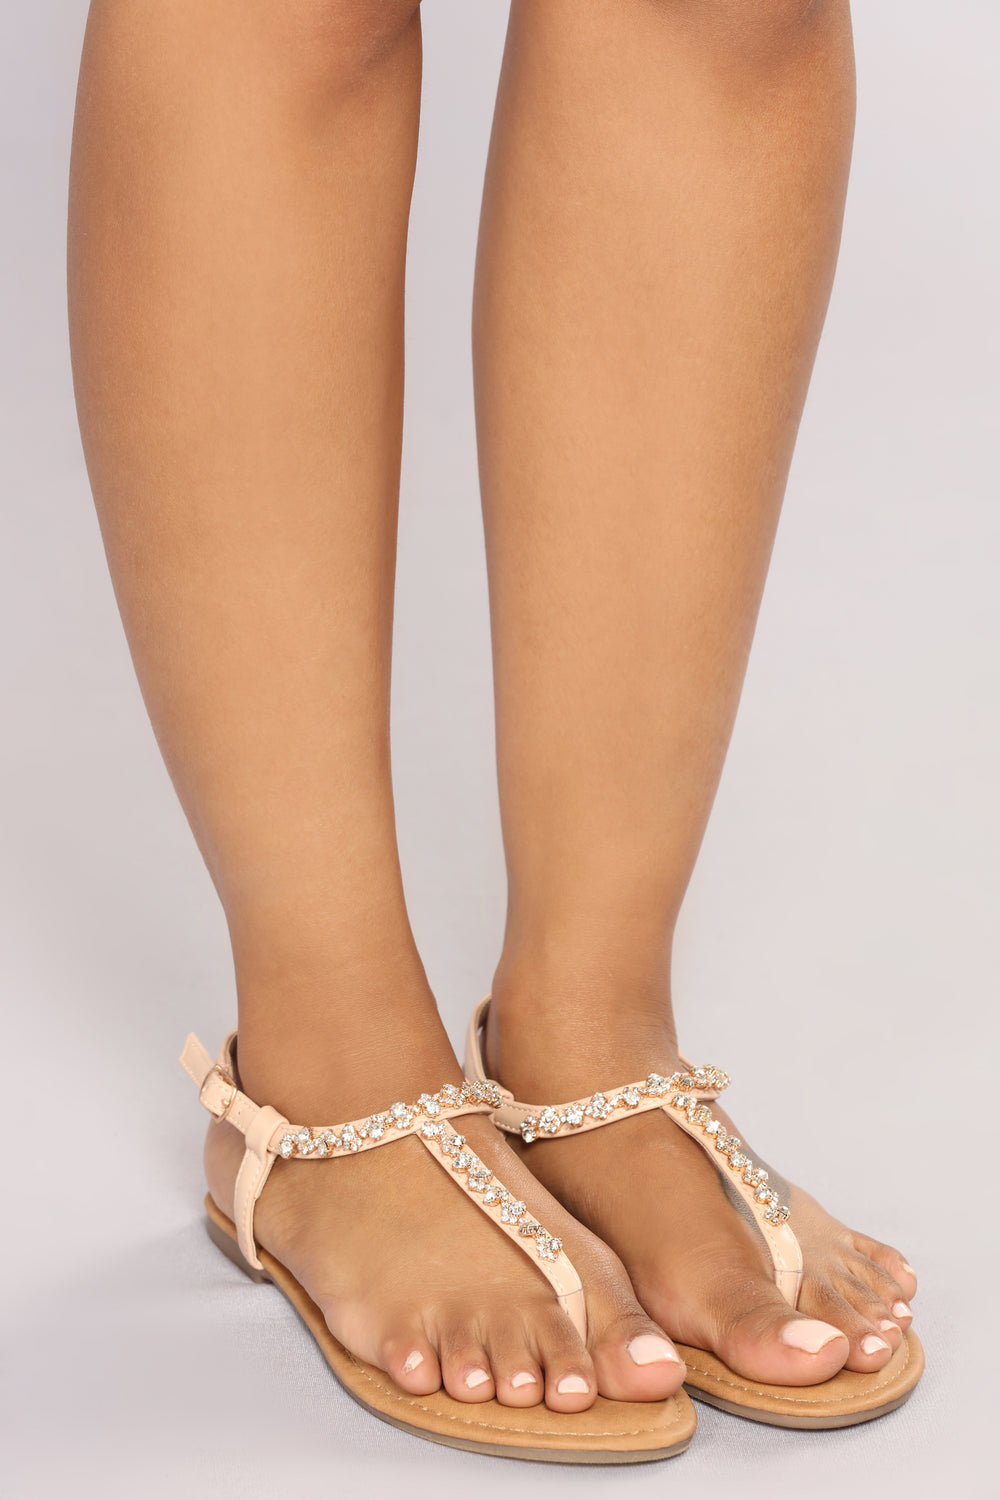 Ventura Jeweled Sandal - Blush